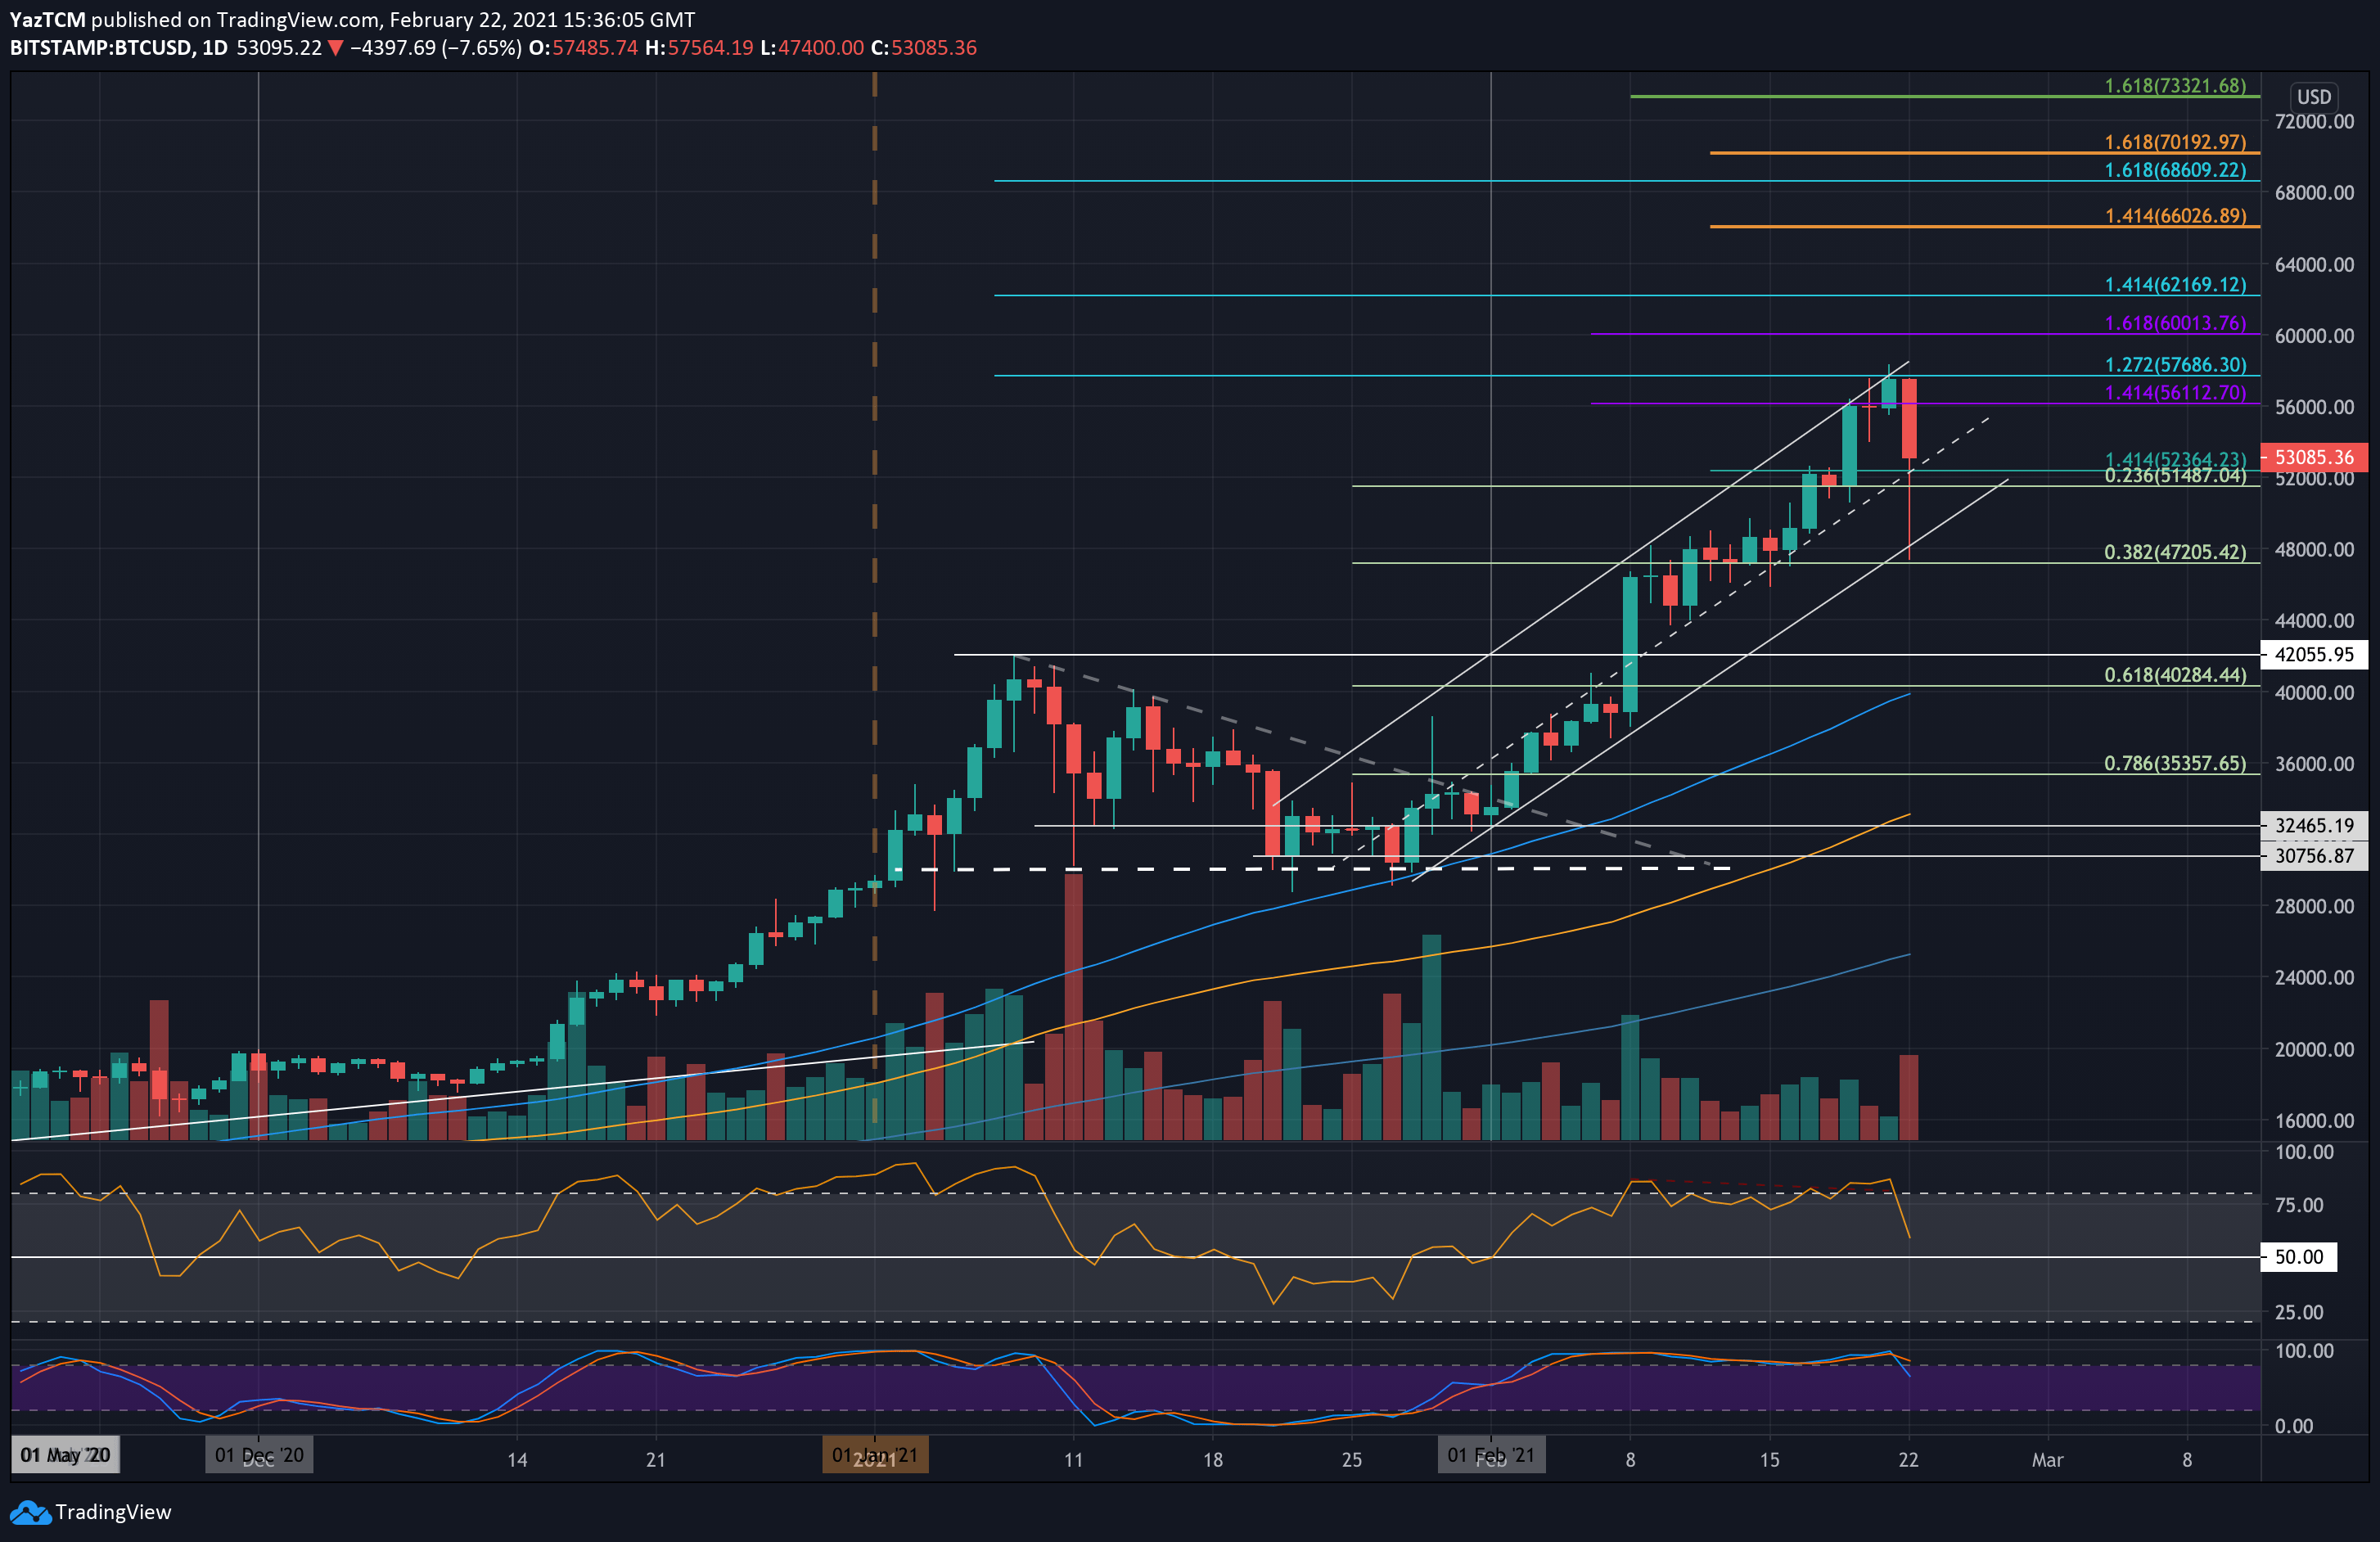 Bitcoin Price Analysis: 4 Takeaways Following the Dump to $47K and Back Above $53K